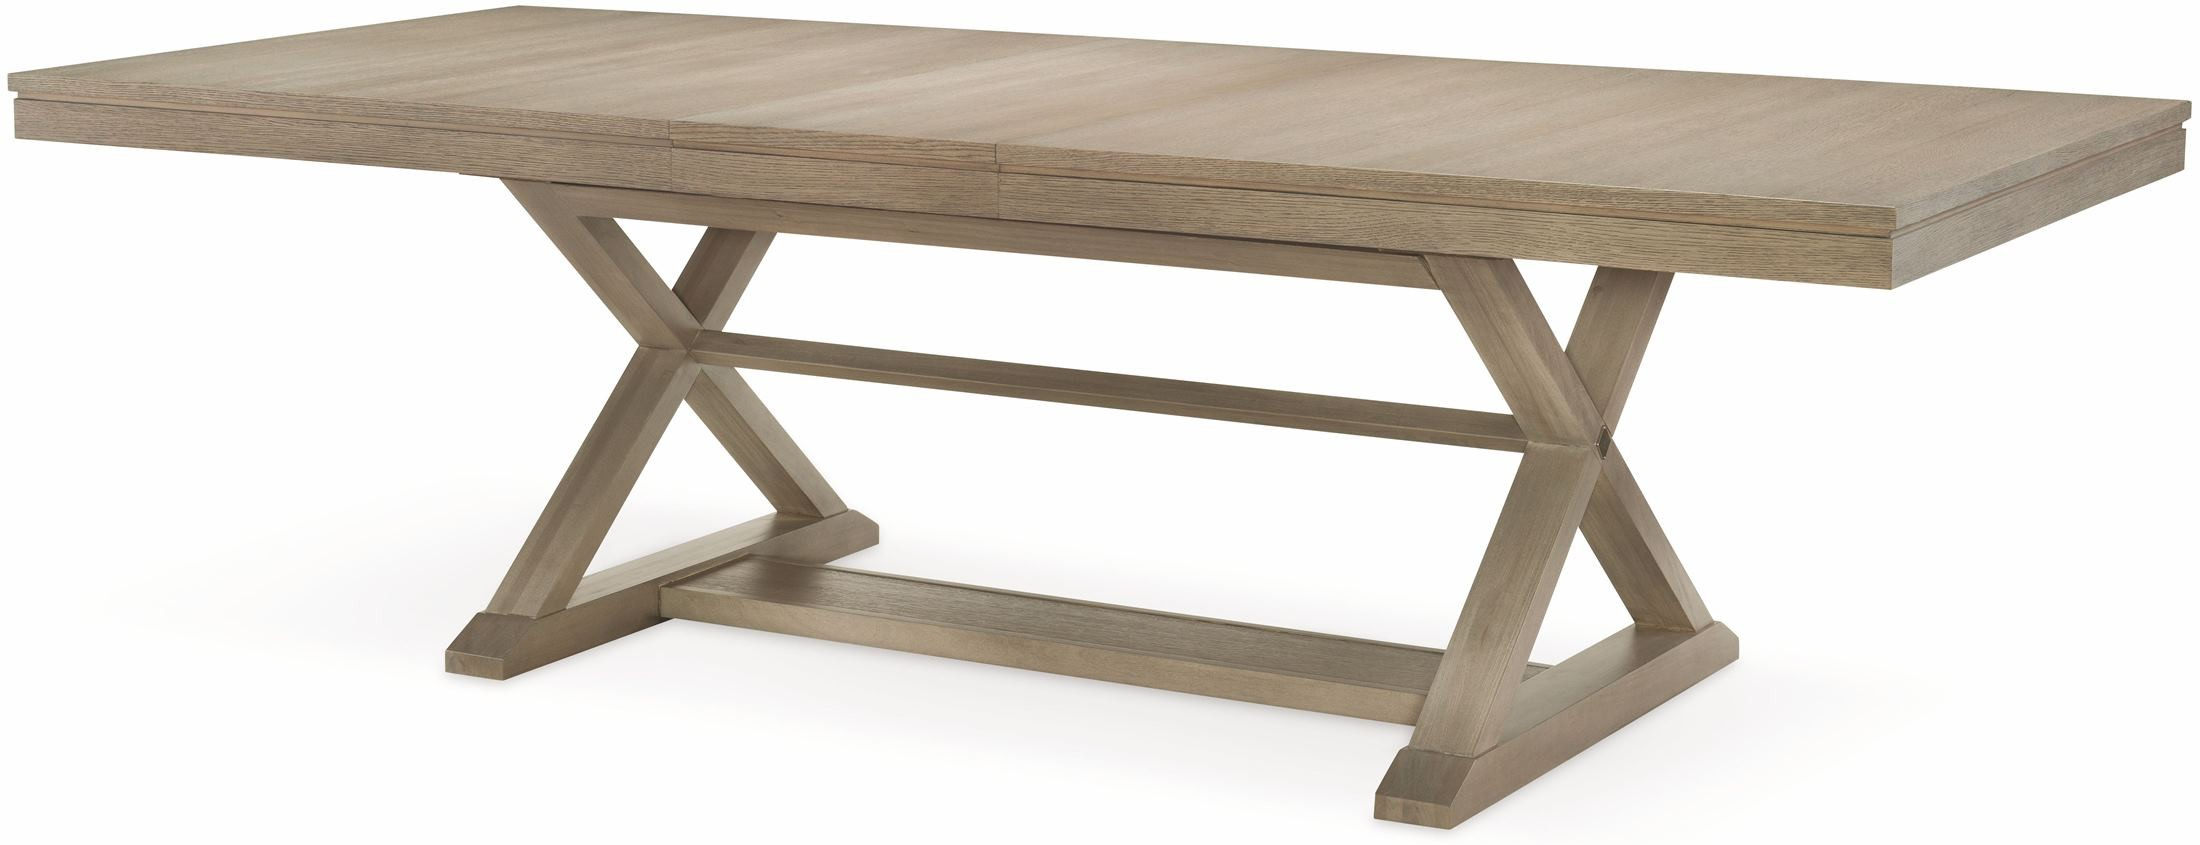 high line greige extendable trestle dining table from rachael ray home coleman furniture. Black Bedroom Furniture Sets. Home Design Ideas